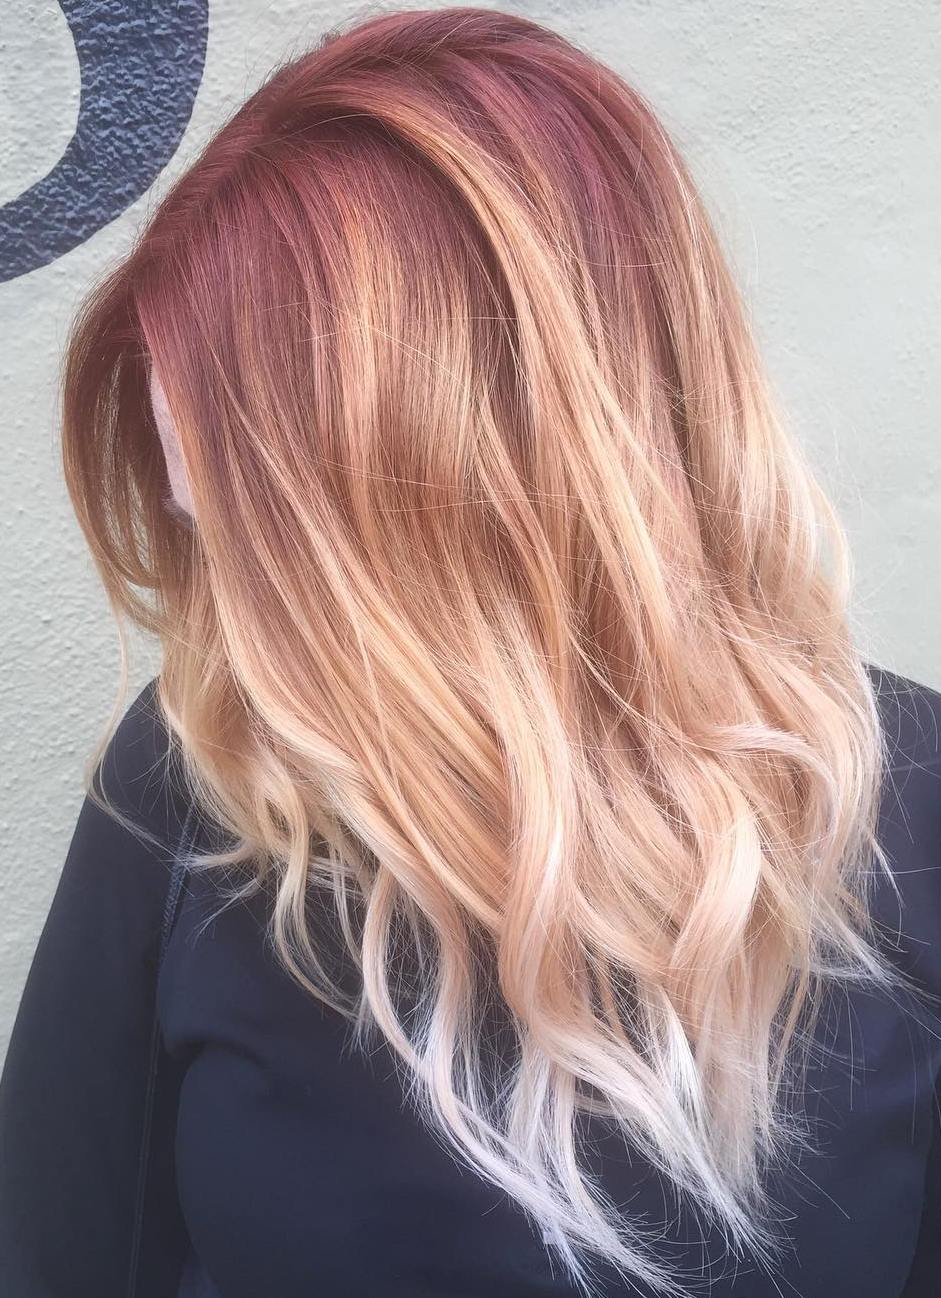 60 best ombre hair color ideas for blond brown red and black hair pink to blonde ombre urmus Image collections